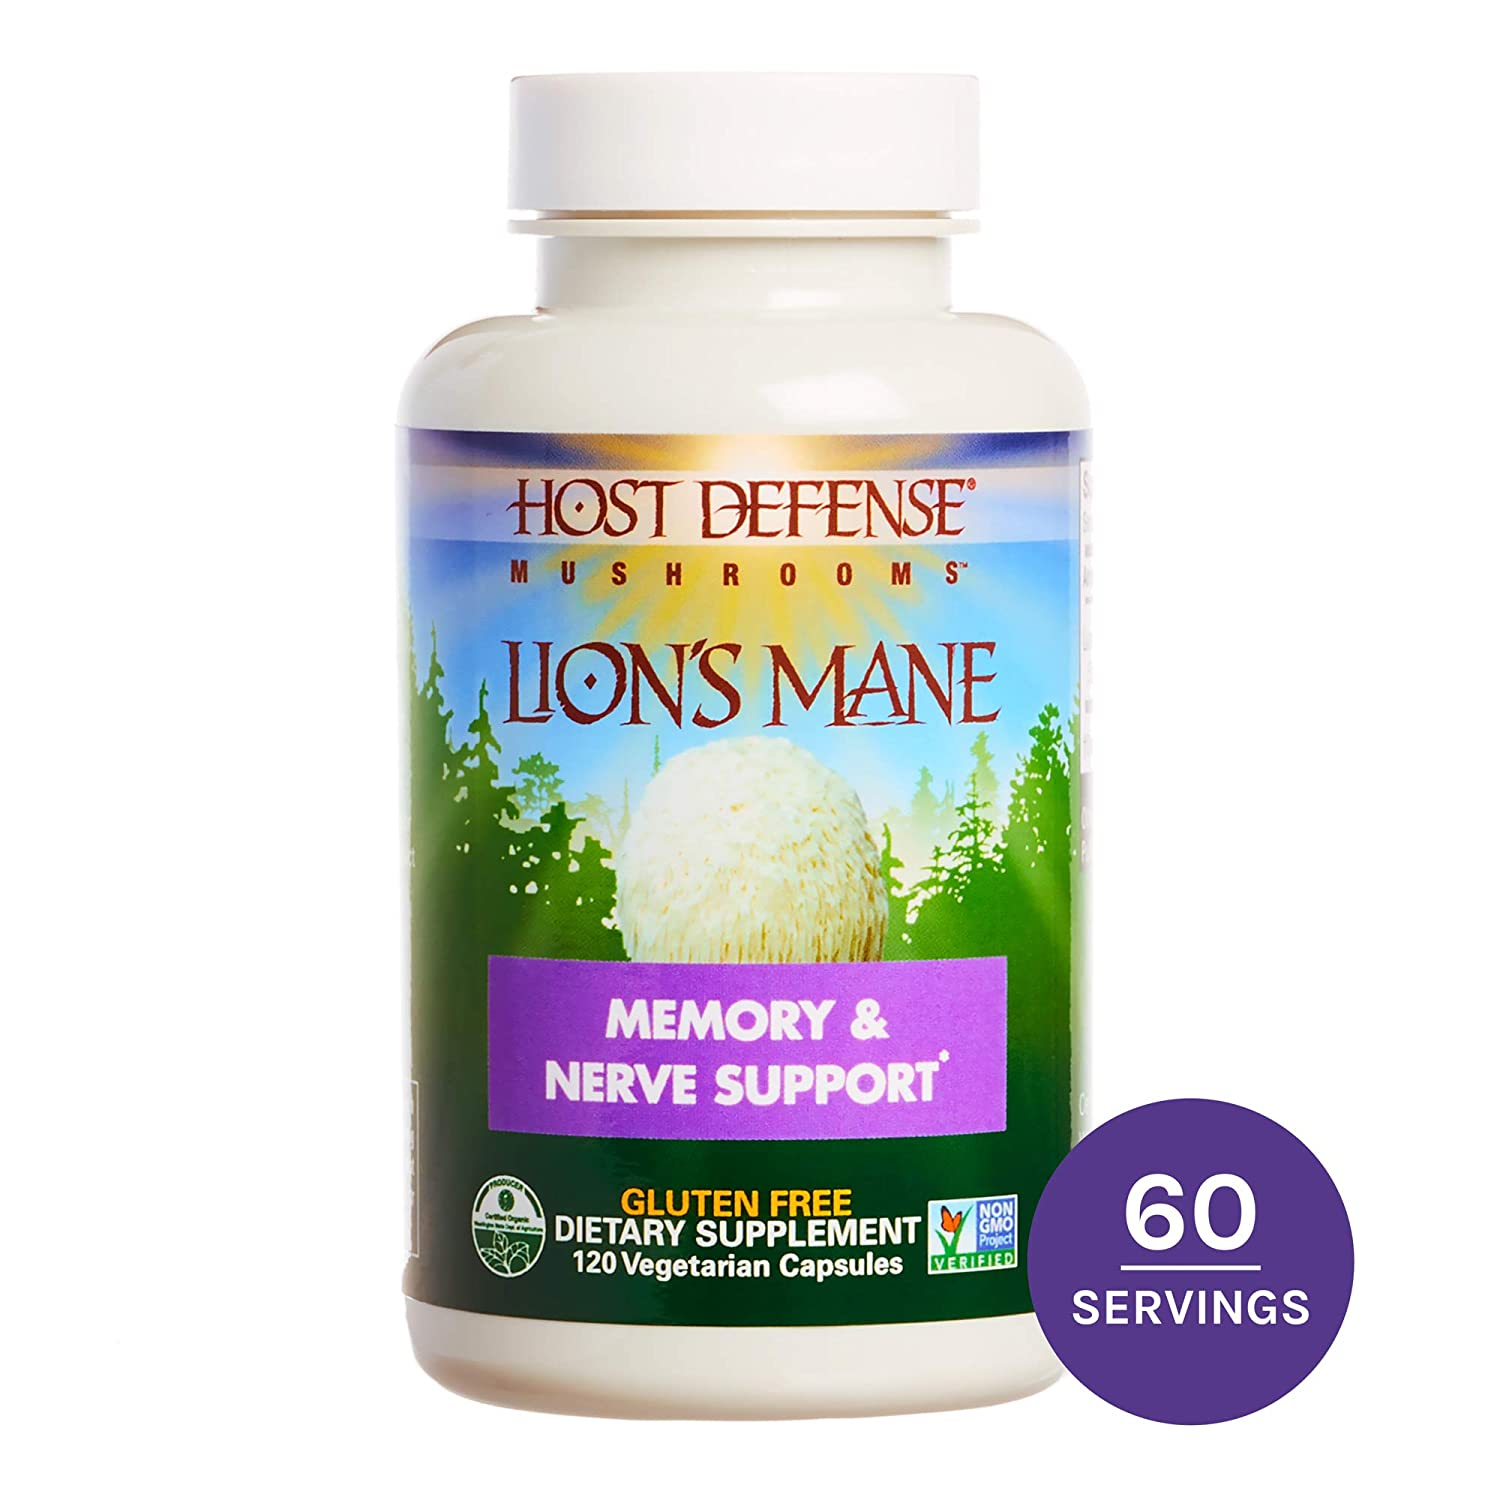 Host Defense, Lion s Mane Capsules, Promotes Mental Clarity, Focus and Memory, Daily Mushroom Supplement, Vegan, Organic, Gluten Free, 120 Capsules 60 Servings